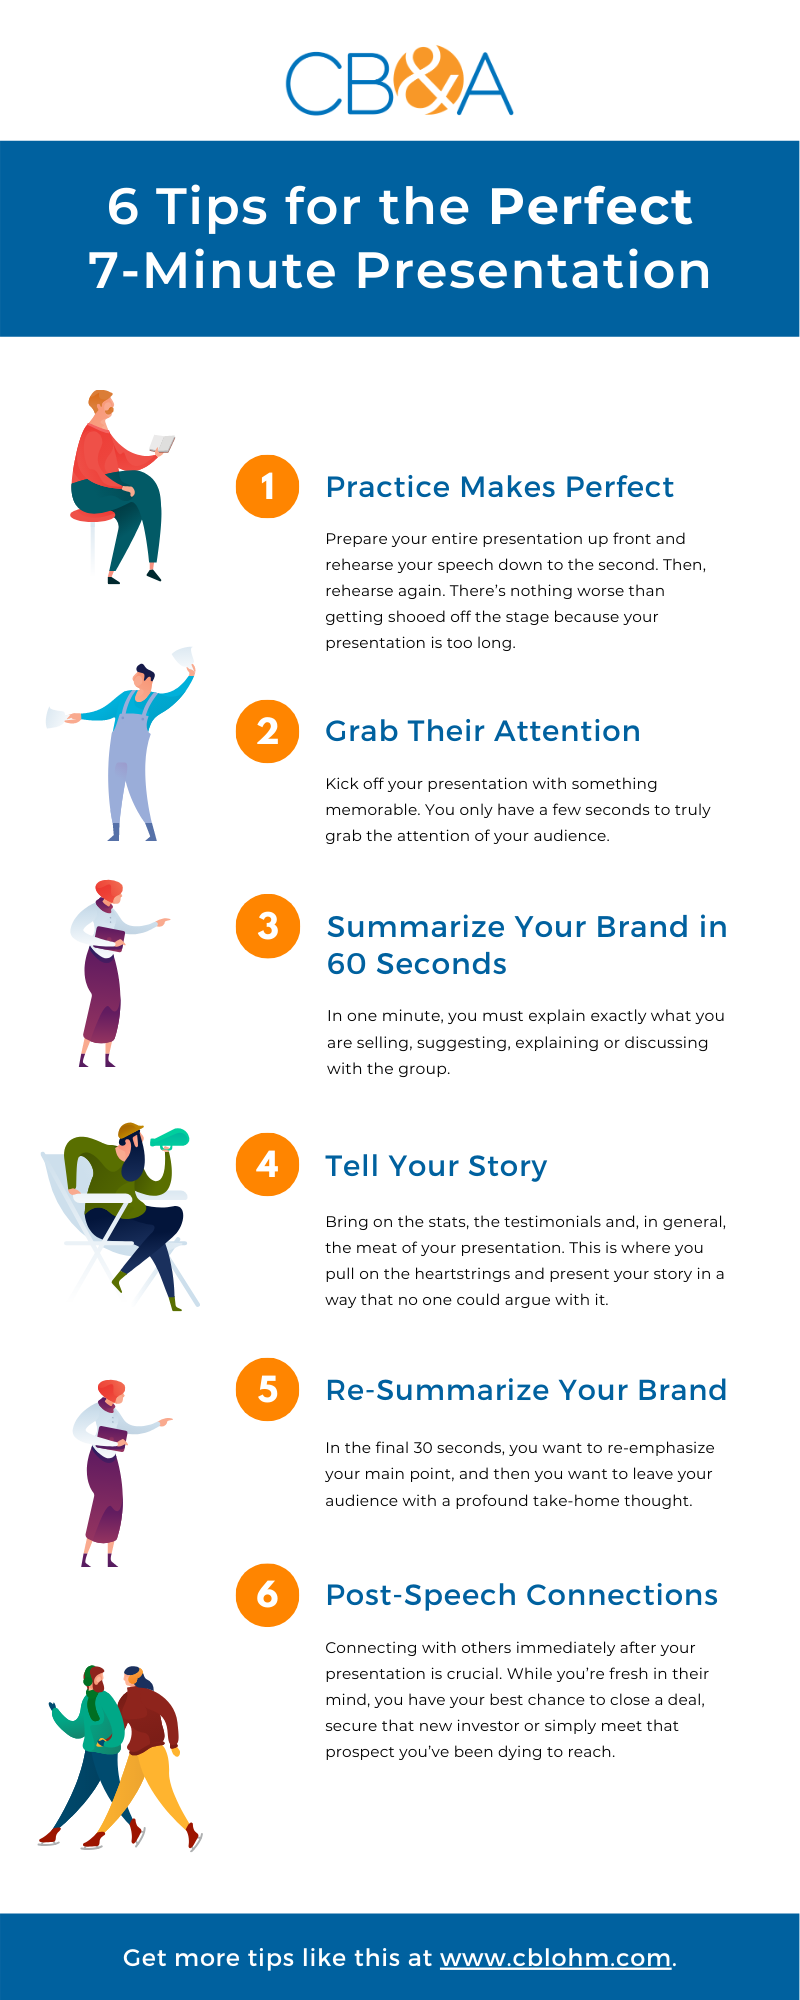 6 tips for the perfect ASU GSV presentation include practice makes perfect, grab their attention, summarize your brand in 60-seconds, tell your story, re-summarize your brand and make post-speech connections